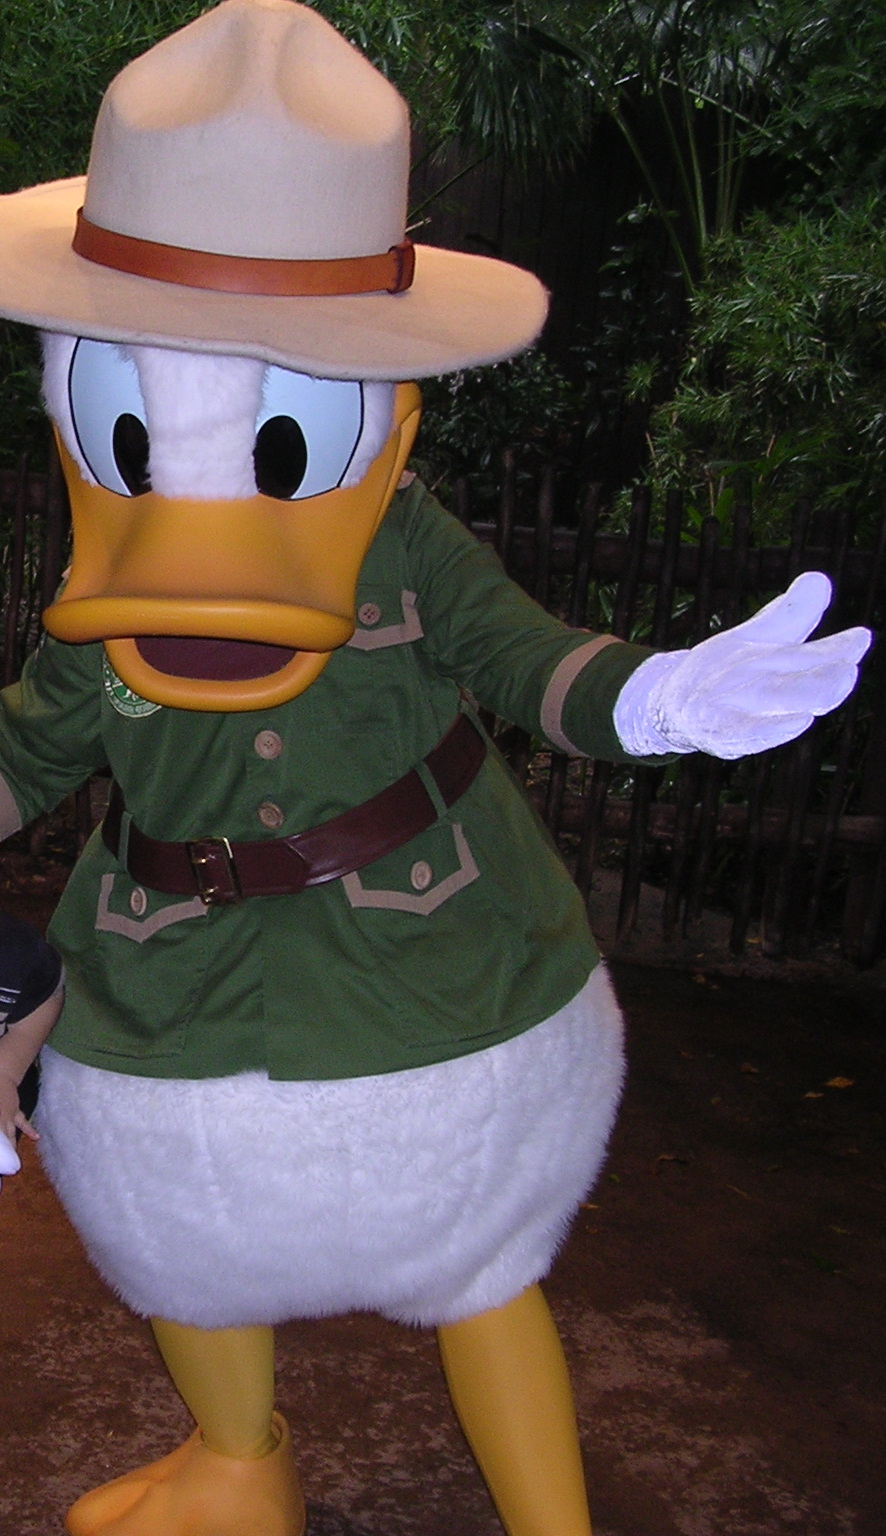 Old Donald Duck